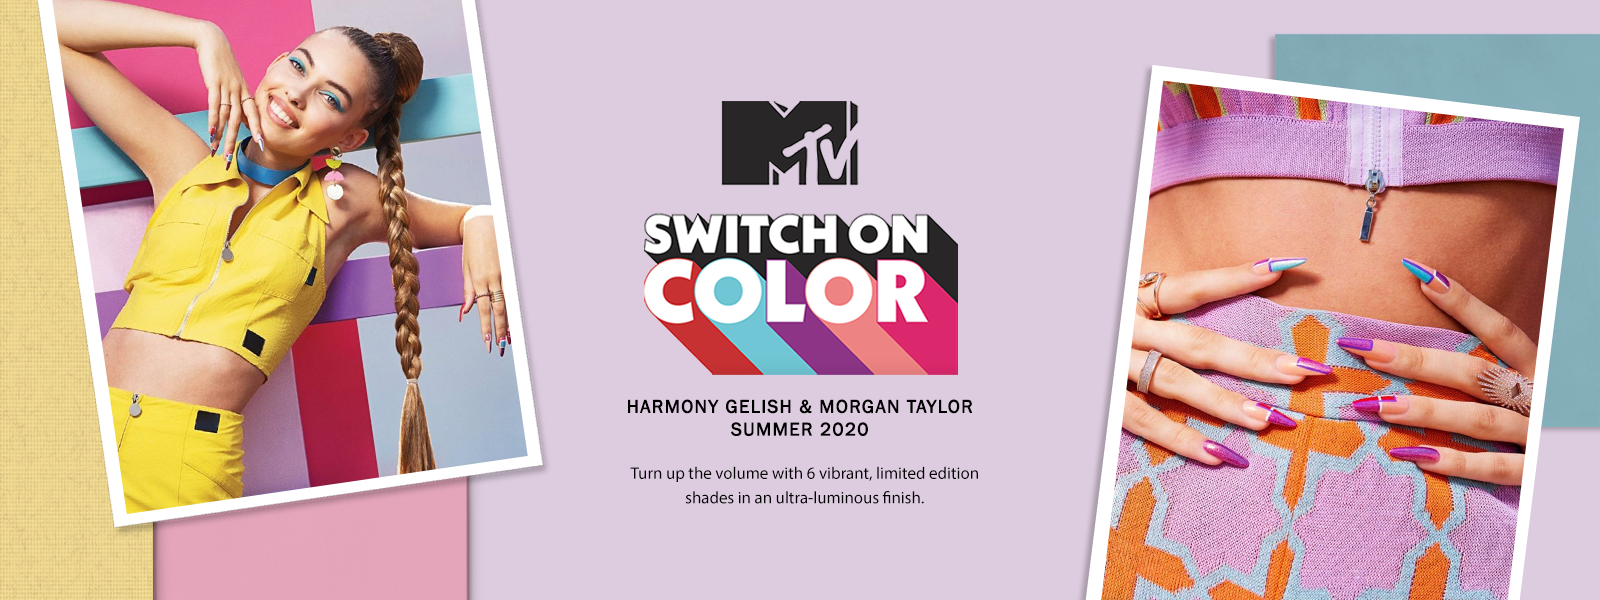 MTV Switch On Color EtE 2020